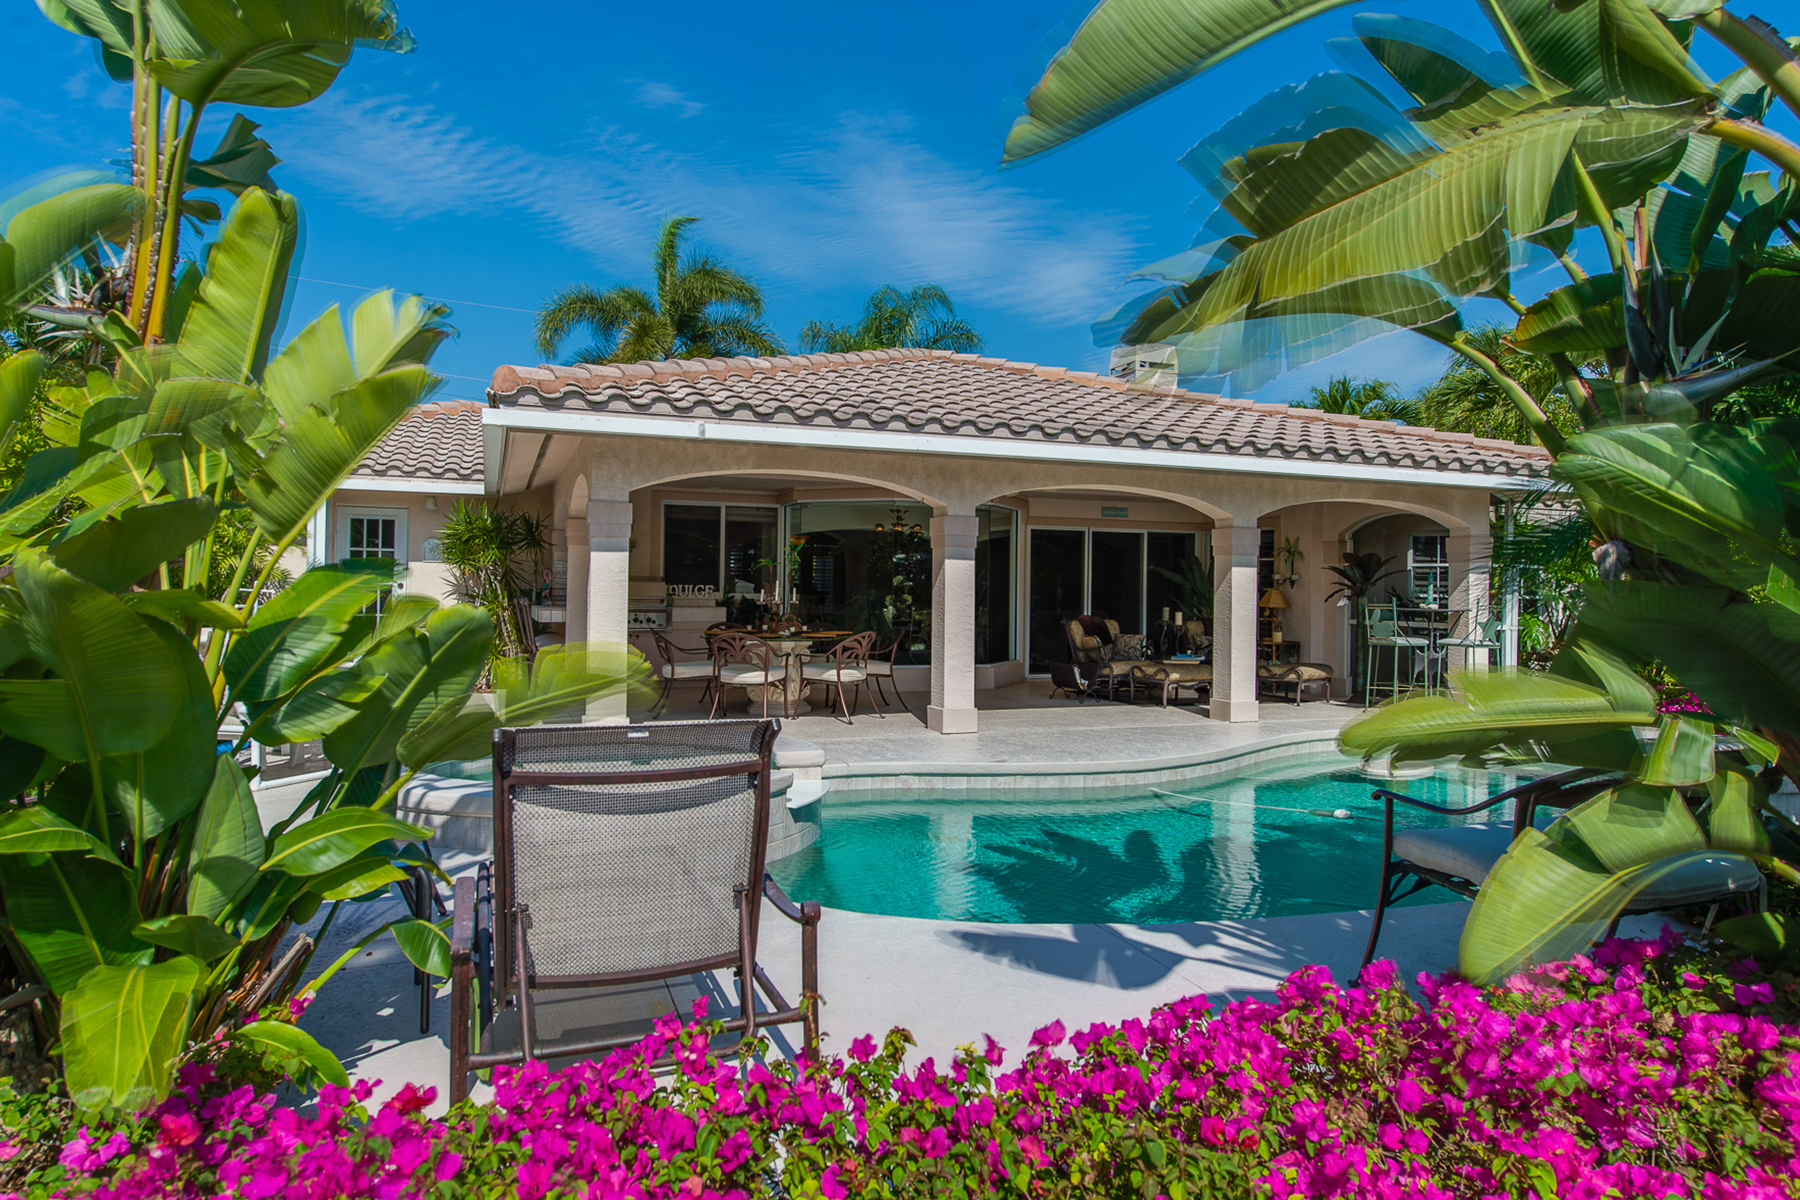 Maison unifamiliale pour l Vente à SANIBEL 932 Whelk Dr Sanibel, Florida, 33957 États-Unis